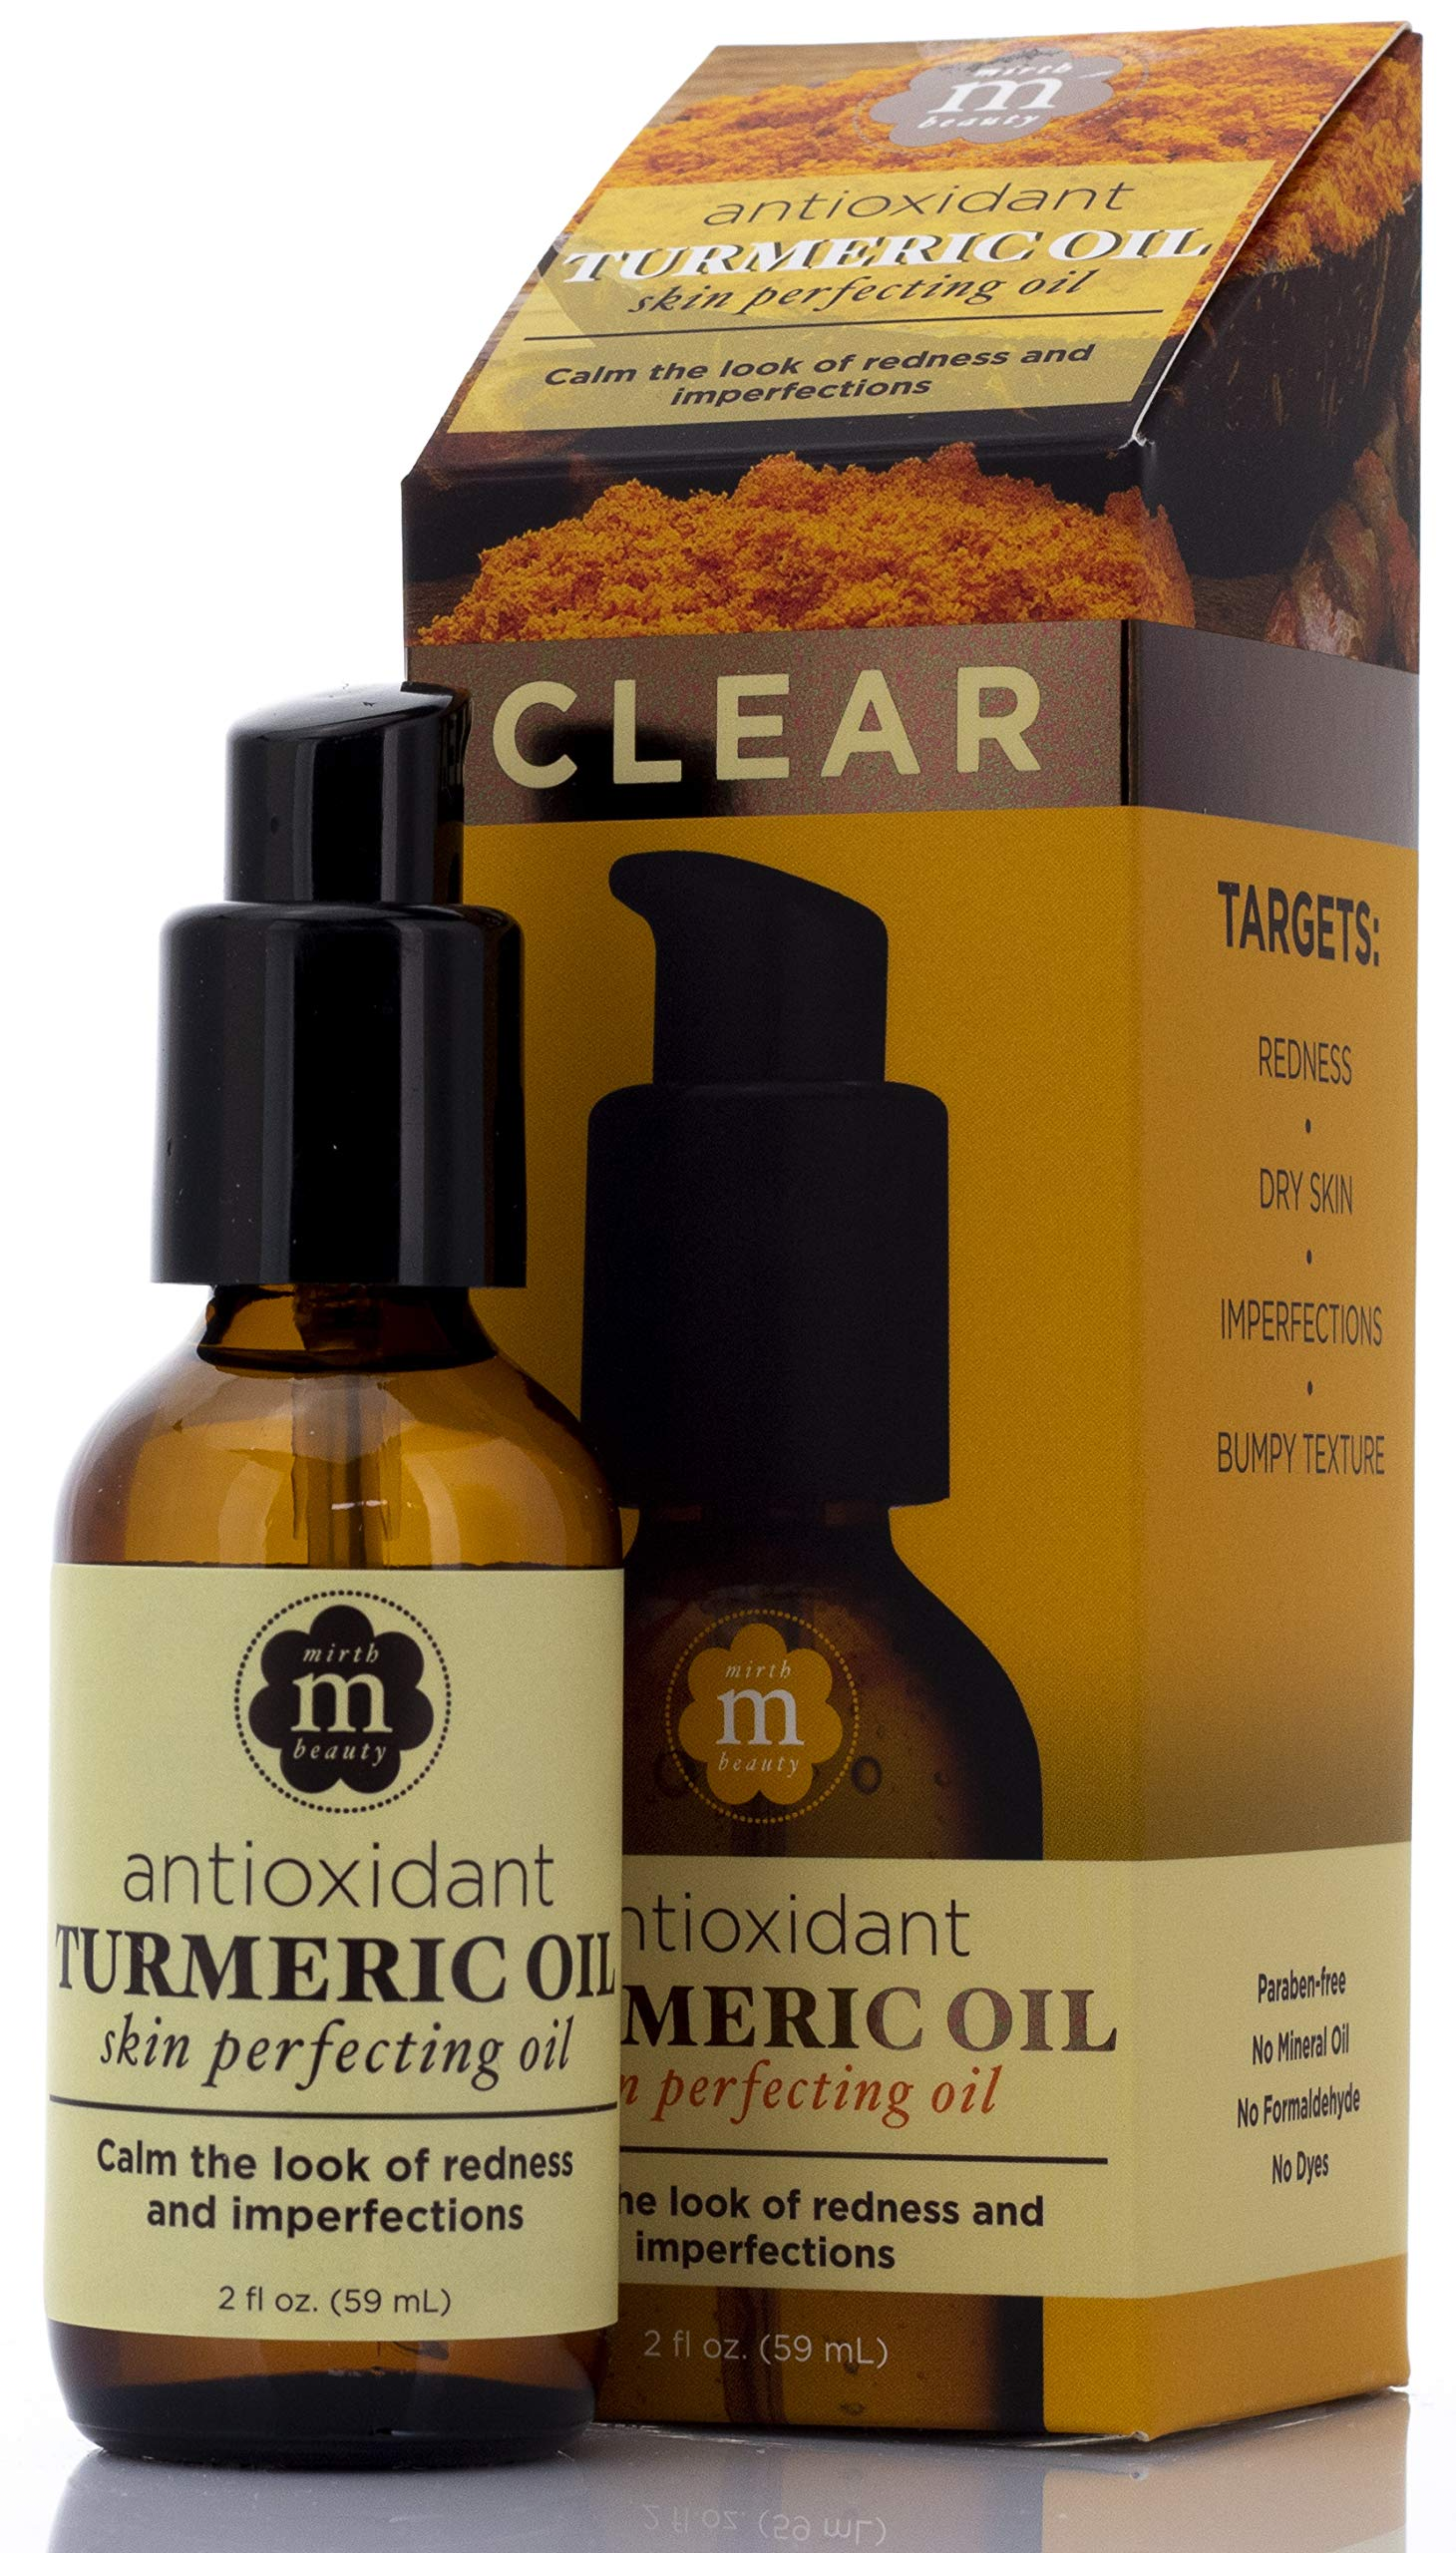 Antioxidant Turmeric Facial Oil Premium Anti-Aging Serum Skin Cream for Wrinkles, Redness, Dry Skin, More Concentrated Hydrating Treatment Delivers Soft, Smooth, Plump, Firm Skin by Mirth Beauty